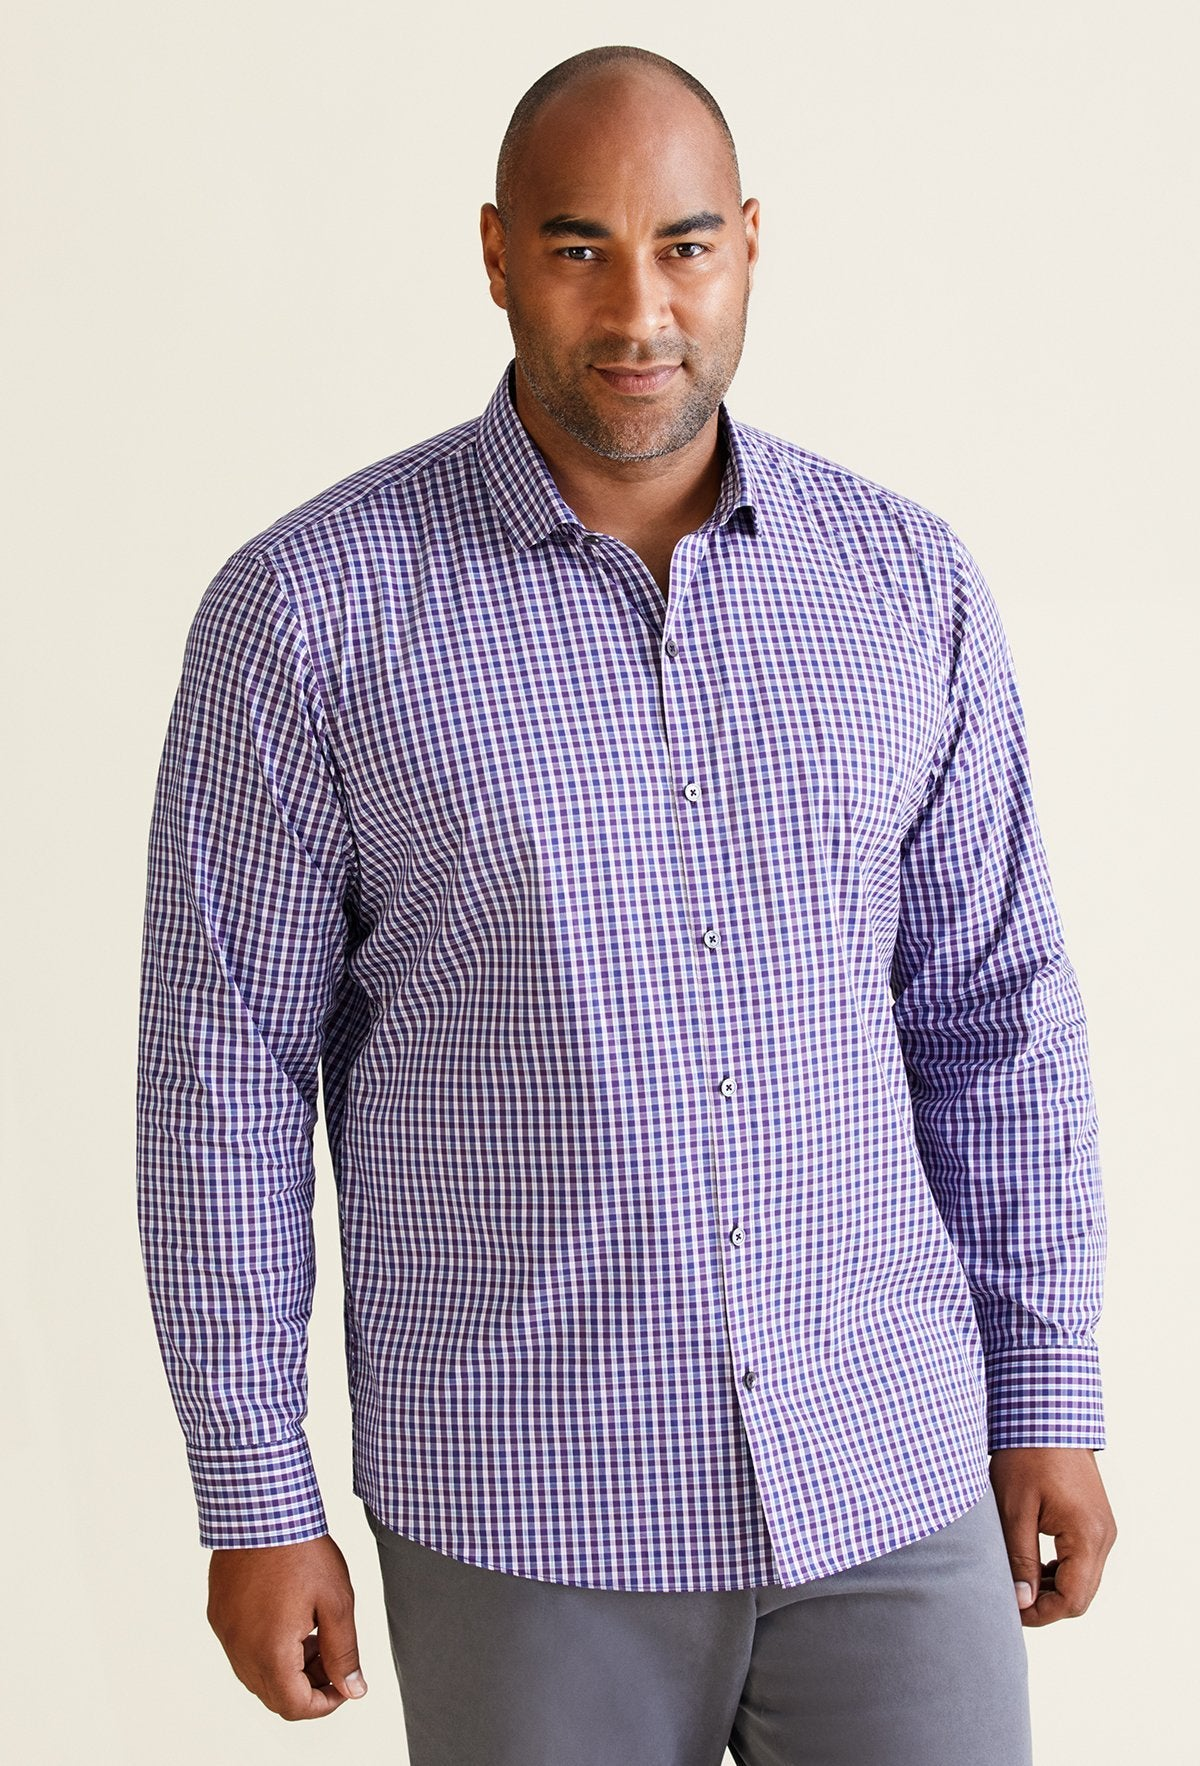 men's long sleeve purple checkered dress shirt